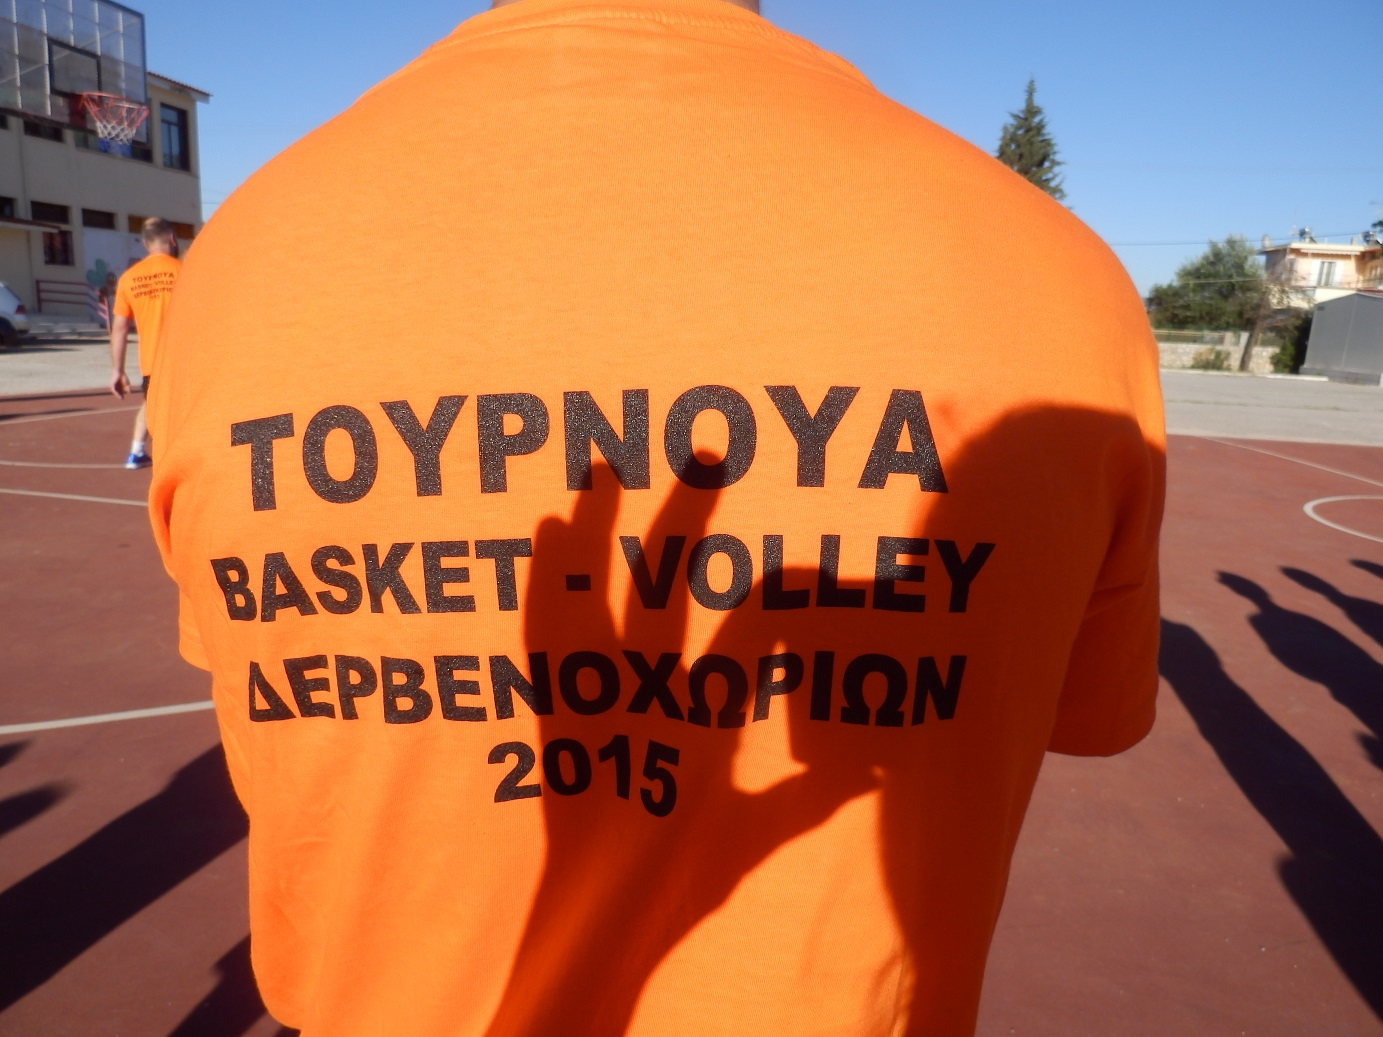 tournoua_basket